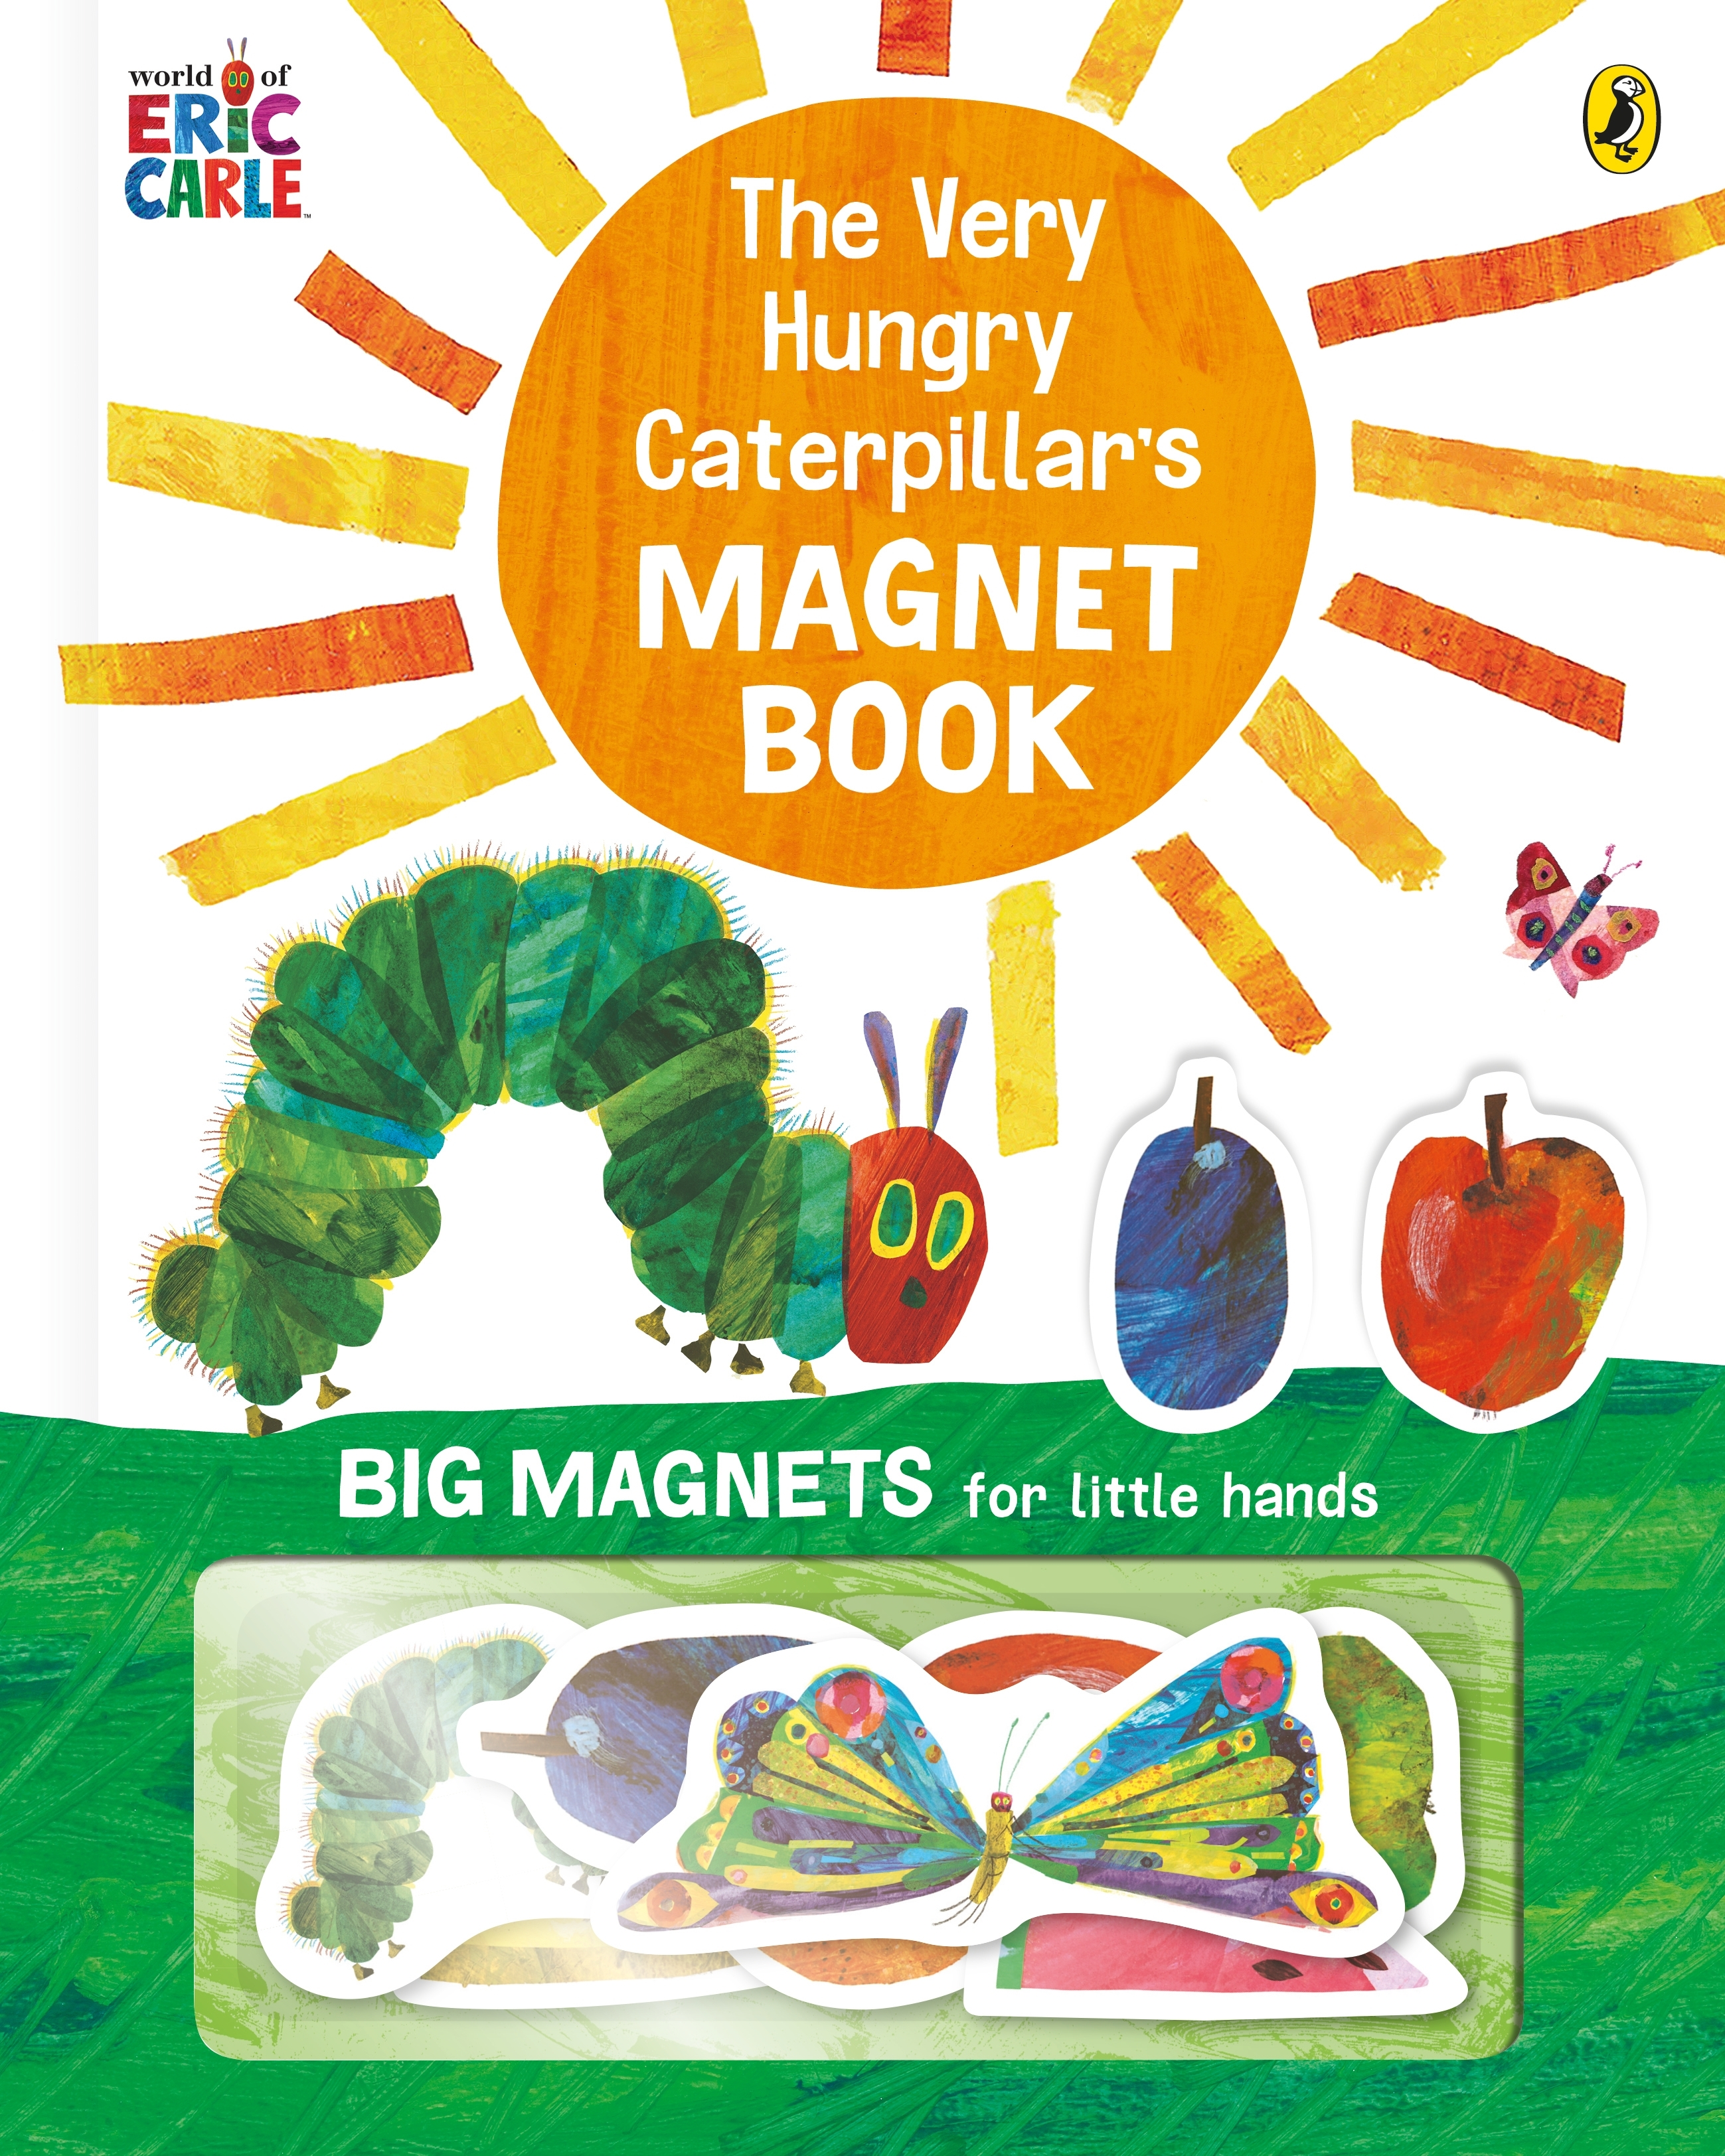 The Very Hungry Caterpillar's Magnet Book